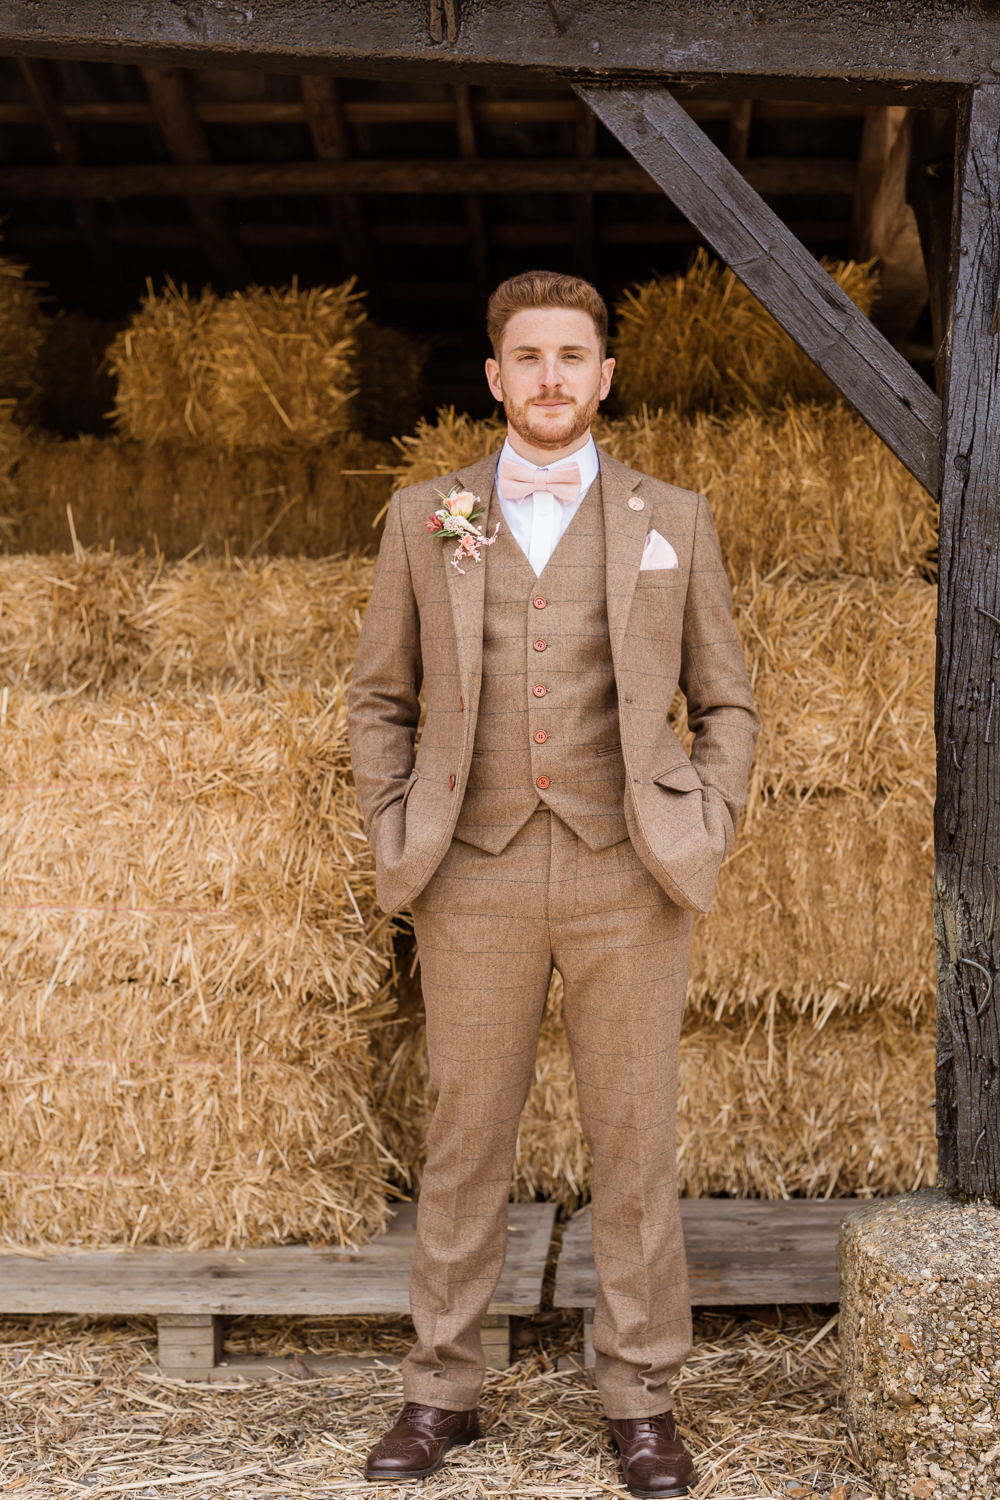 Groom Brown Tweed Suit Pink Bow Tie Tropical Boho Countryside Wedding Ideas Sarah Brookes Photography